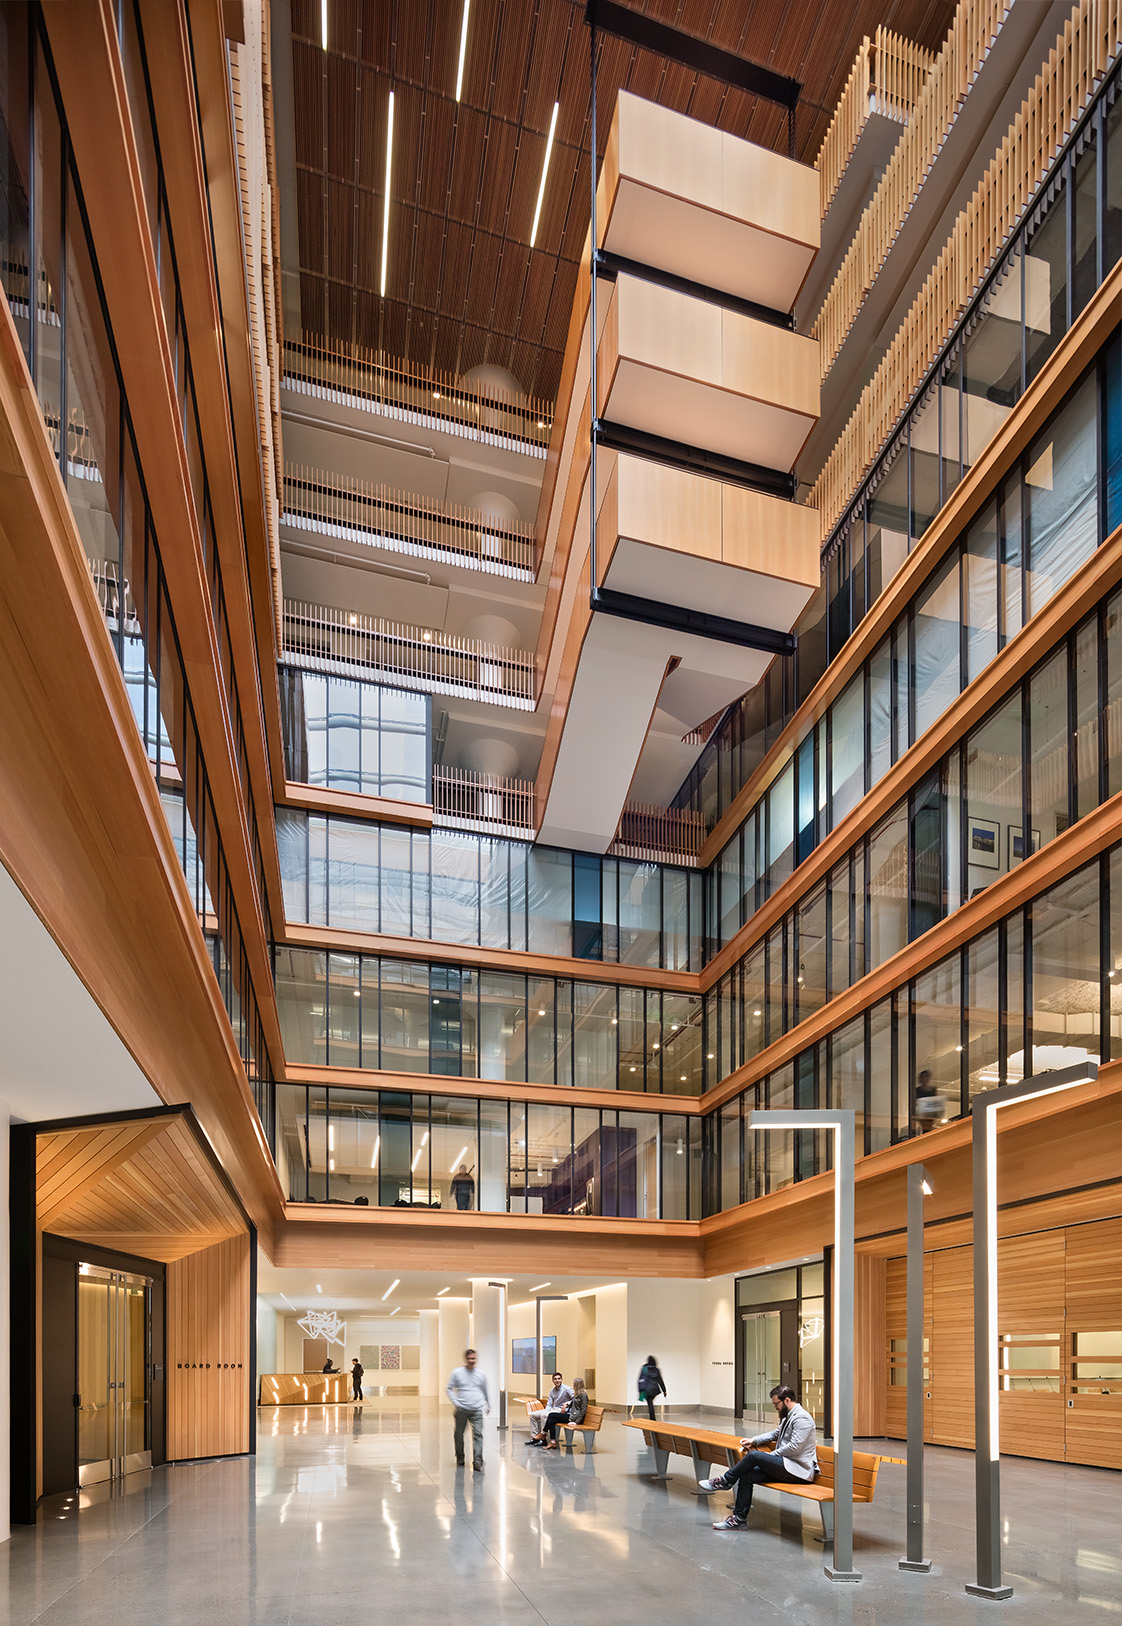 Bay Area Metro Center Seven-Story Atrium with Repurposed Wood Paneling